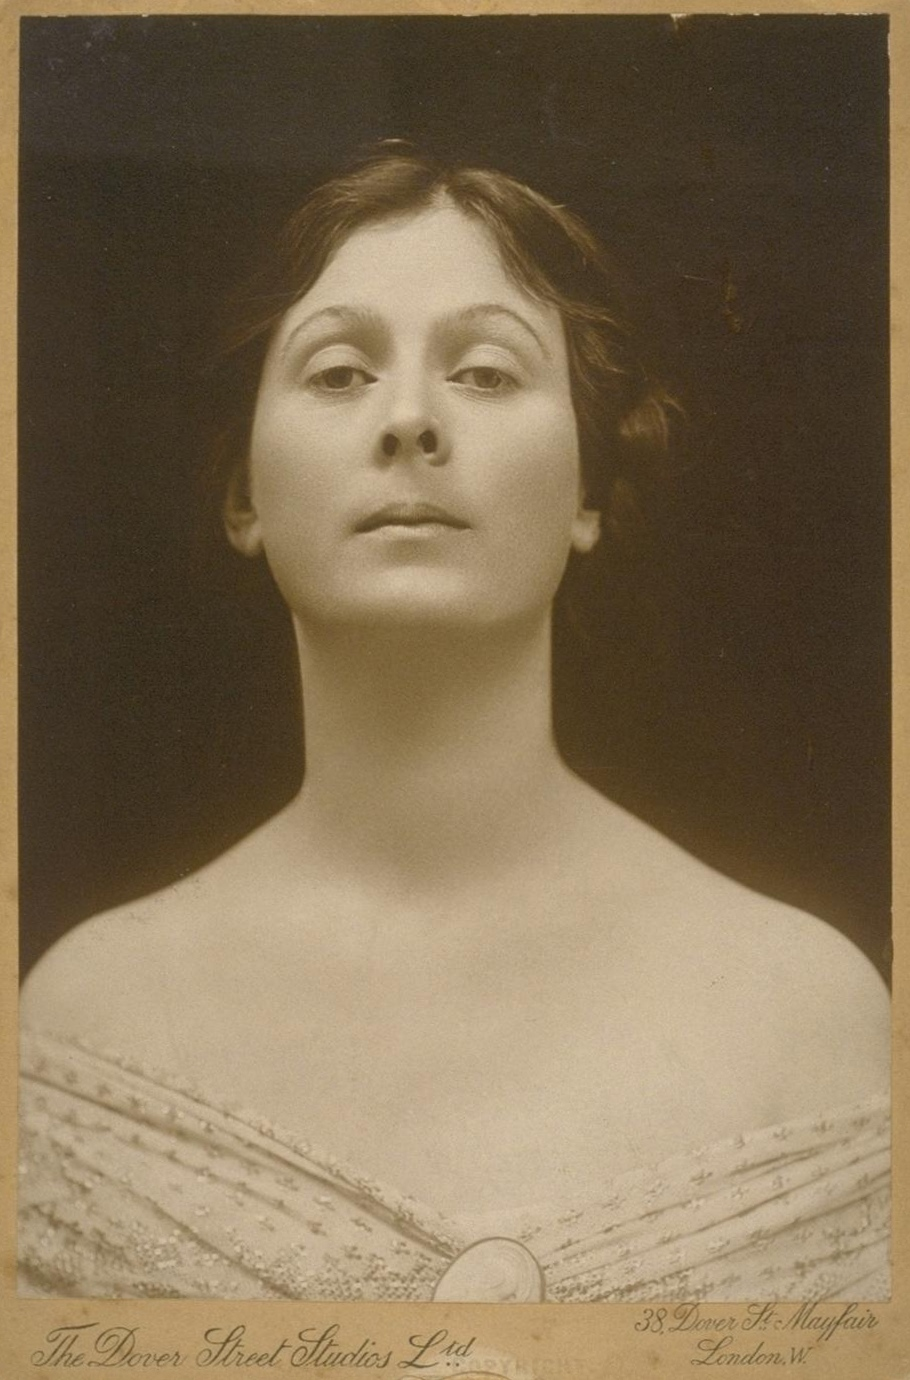 http://upload.wikimedia.org/wikipedia/commons/5/5f/Isadora_Duncan_portrait.jpg